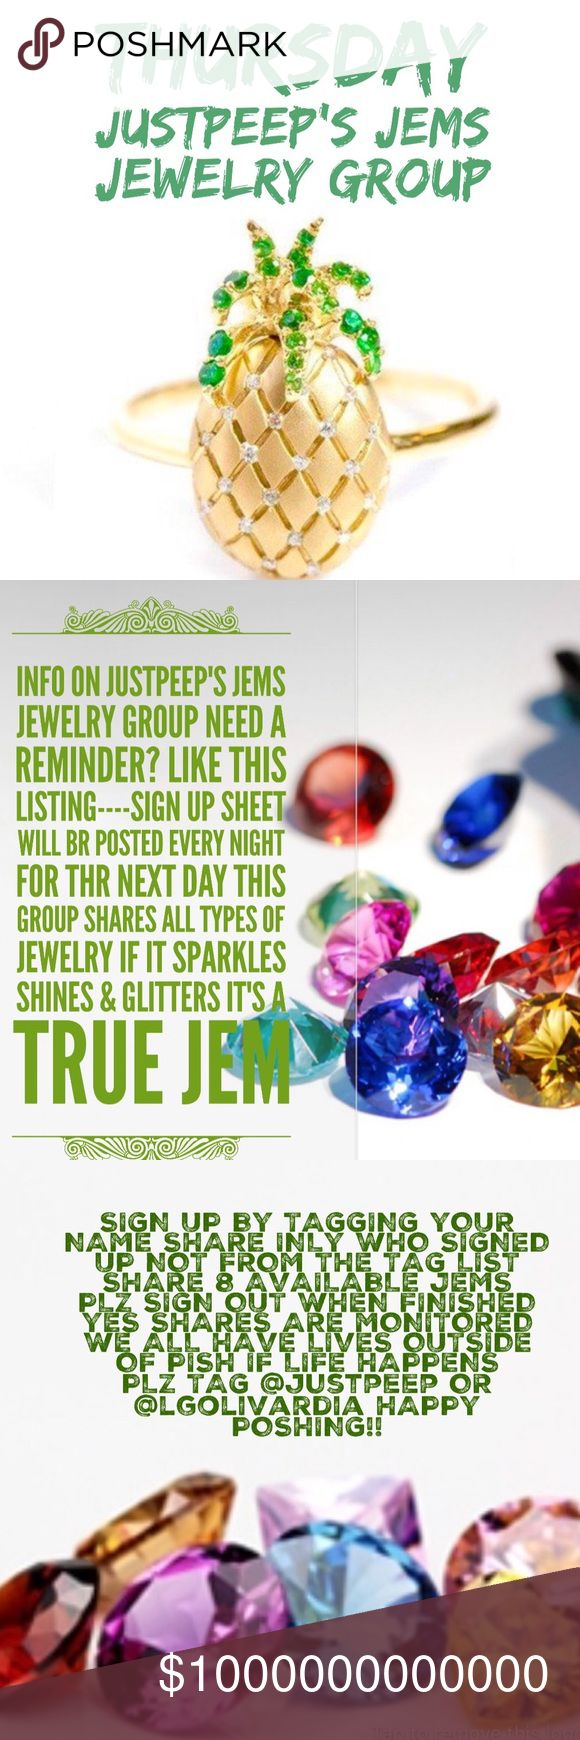 THURSDAY MAY 25 💍WELCOME AND THANK YOU FOR JOINING US TODAY 💍SIGN UP BY TAGGING YOUR NAME  (ex @justpeep) 💍LIKE THIS TO FIND IT EASILY 💍PLZ NO COMMENTS UNTIL GROUP CLOSES @3PM EST/2PM CST/1PM MST/12PM PST 💍NO EARLY SHARING 💍SHARES ARE MONITORED 💍PLZ SIGN OUT WHEN ALL SHARES ARE COMPLETED BY 12AM YOUR TIME 💍 IF A POSHER DOESN'T HAVE 8 PLZ REPEAT   💍HAVE CONCERNS OR QUESTIONS PLZ TAG @justpeep OR lgolivardia IN Q & A 💍TO FIND ANY LISTING REGARDING THE GROUP AND Q & A CLICK CATEGORY…